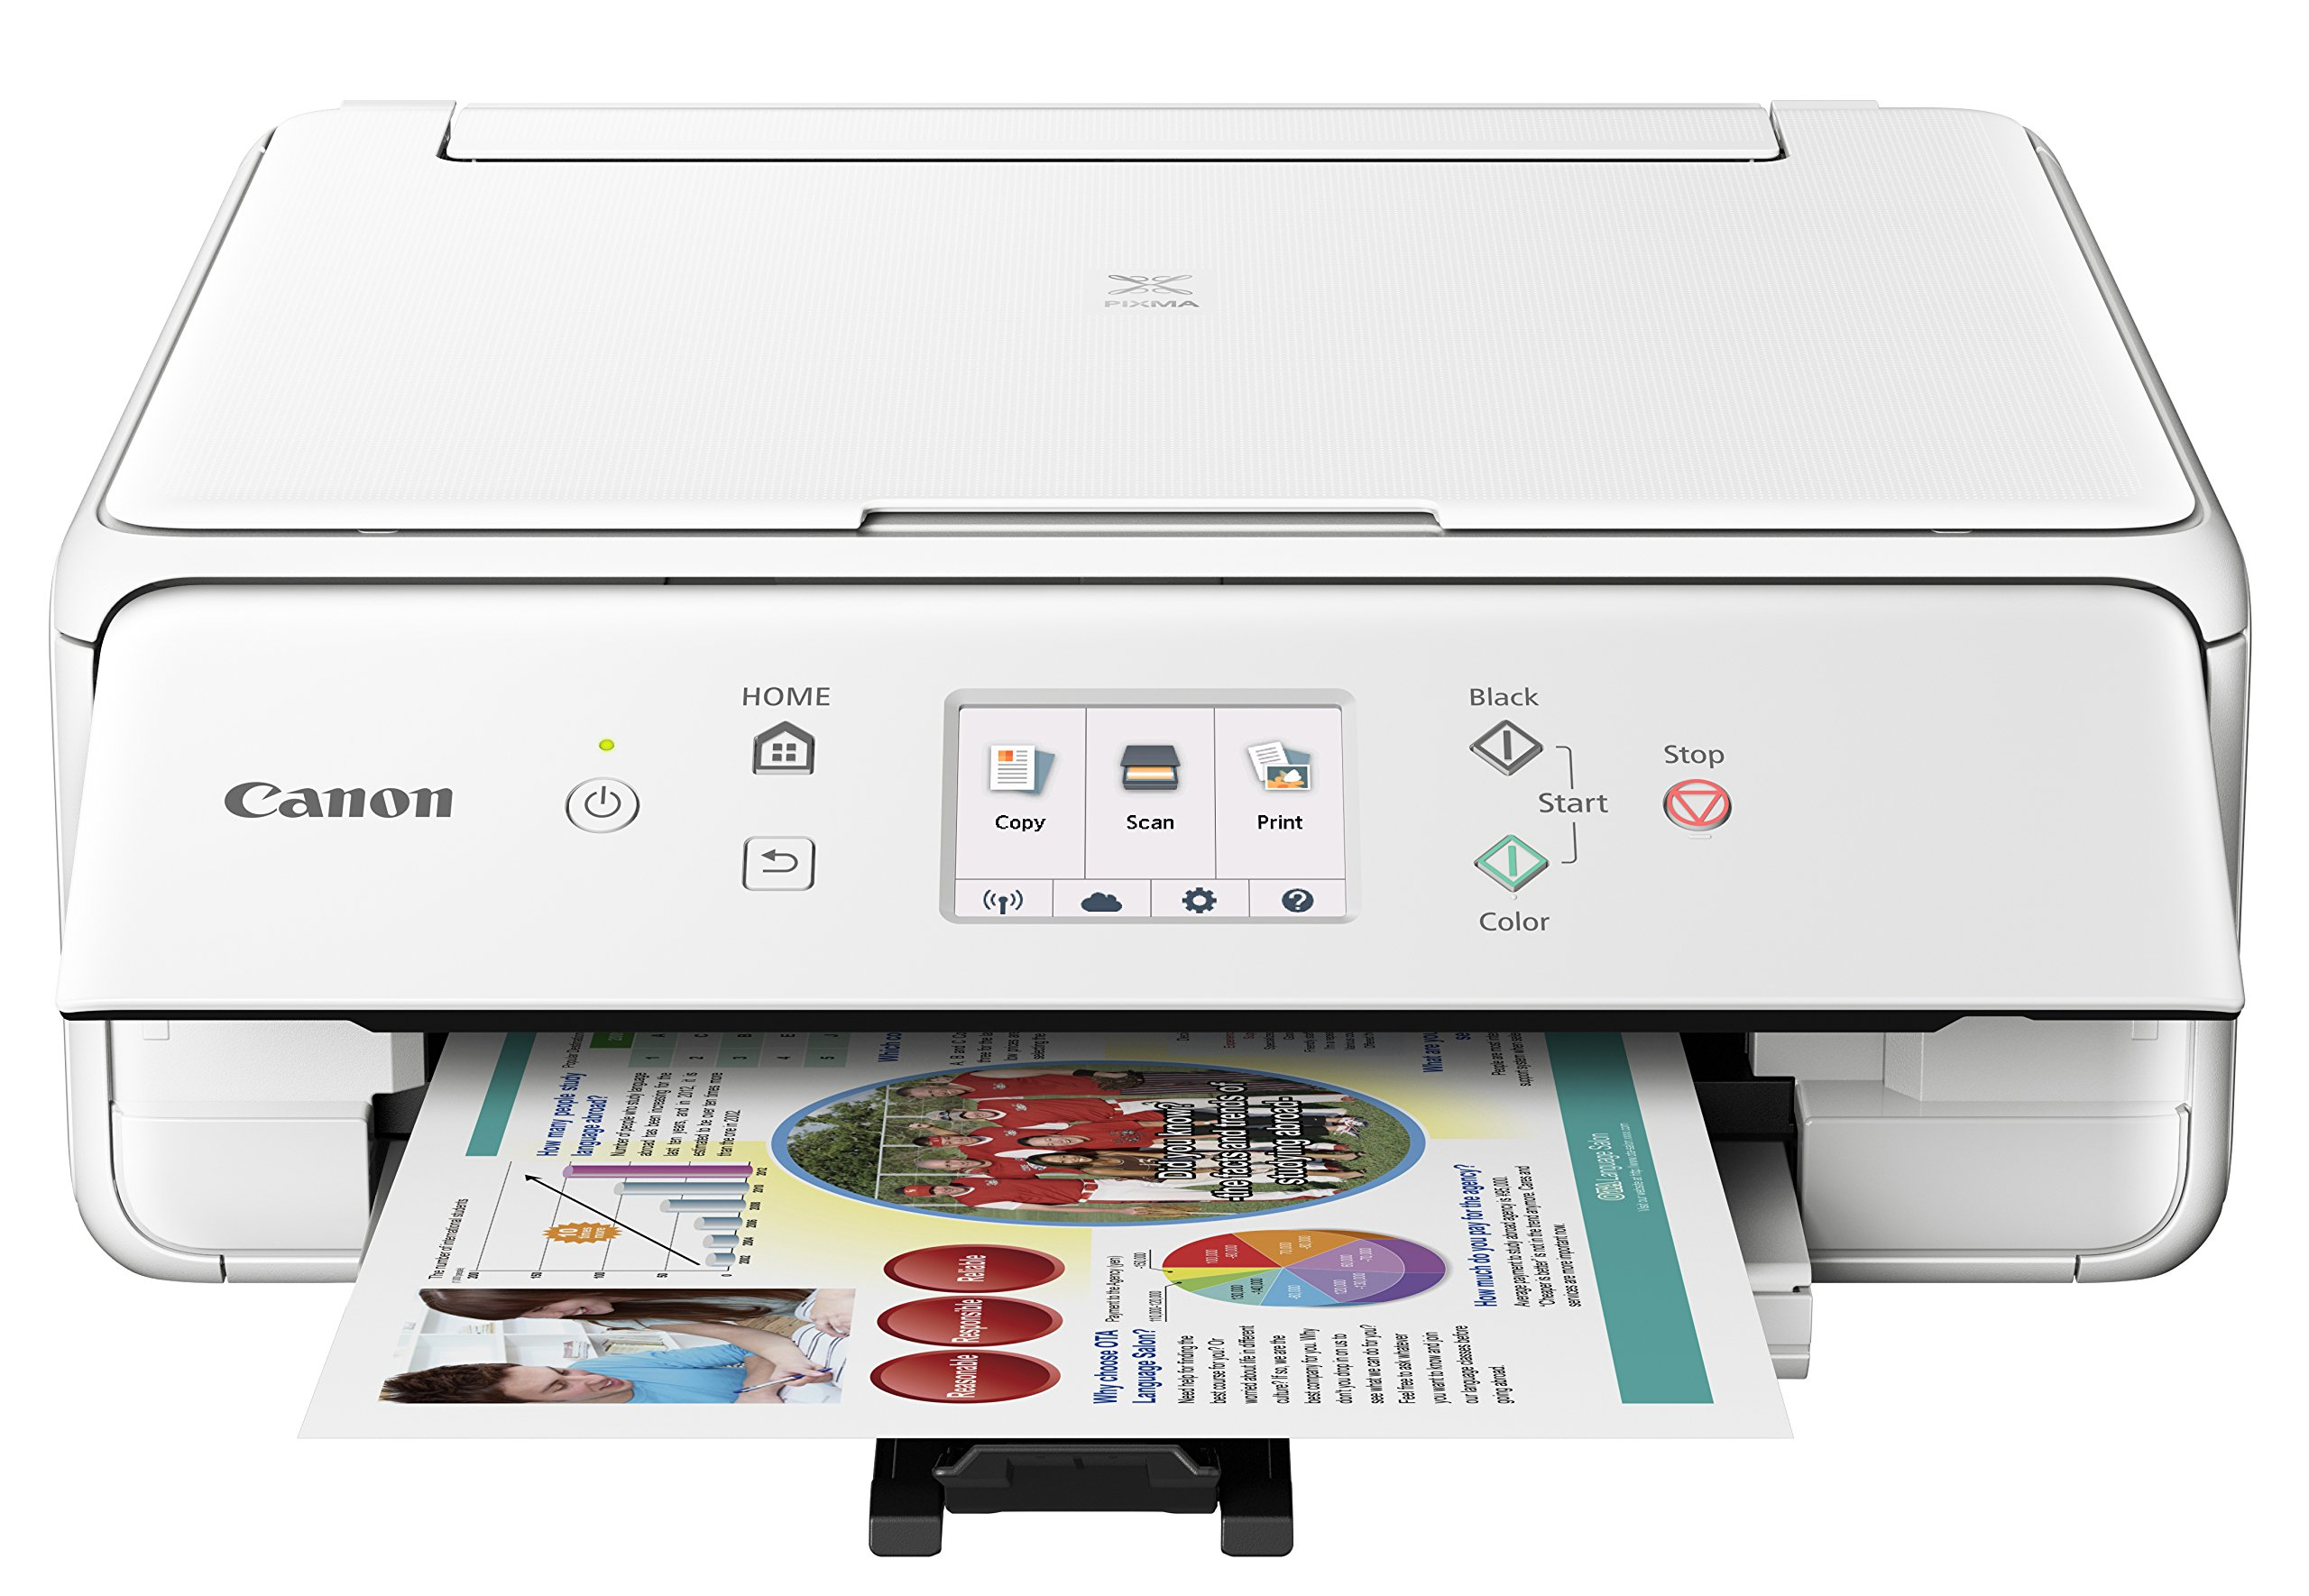 Canon Compact TS6020 Wireless Home Inkjet All-in-One Printer, Copier & Scanner, Mobile Printing, Auto Duplex and Business Card Printing, White